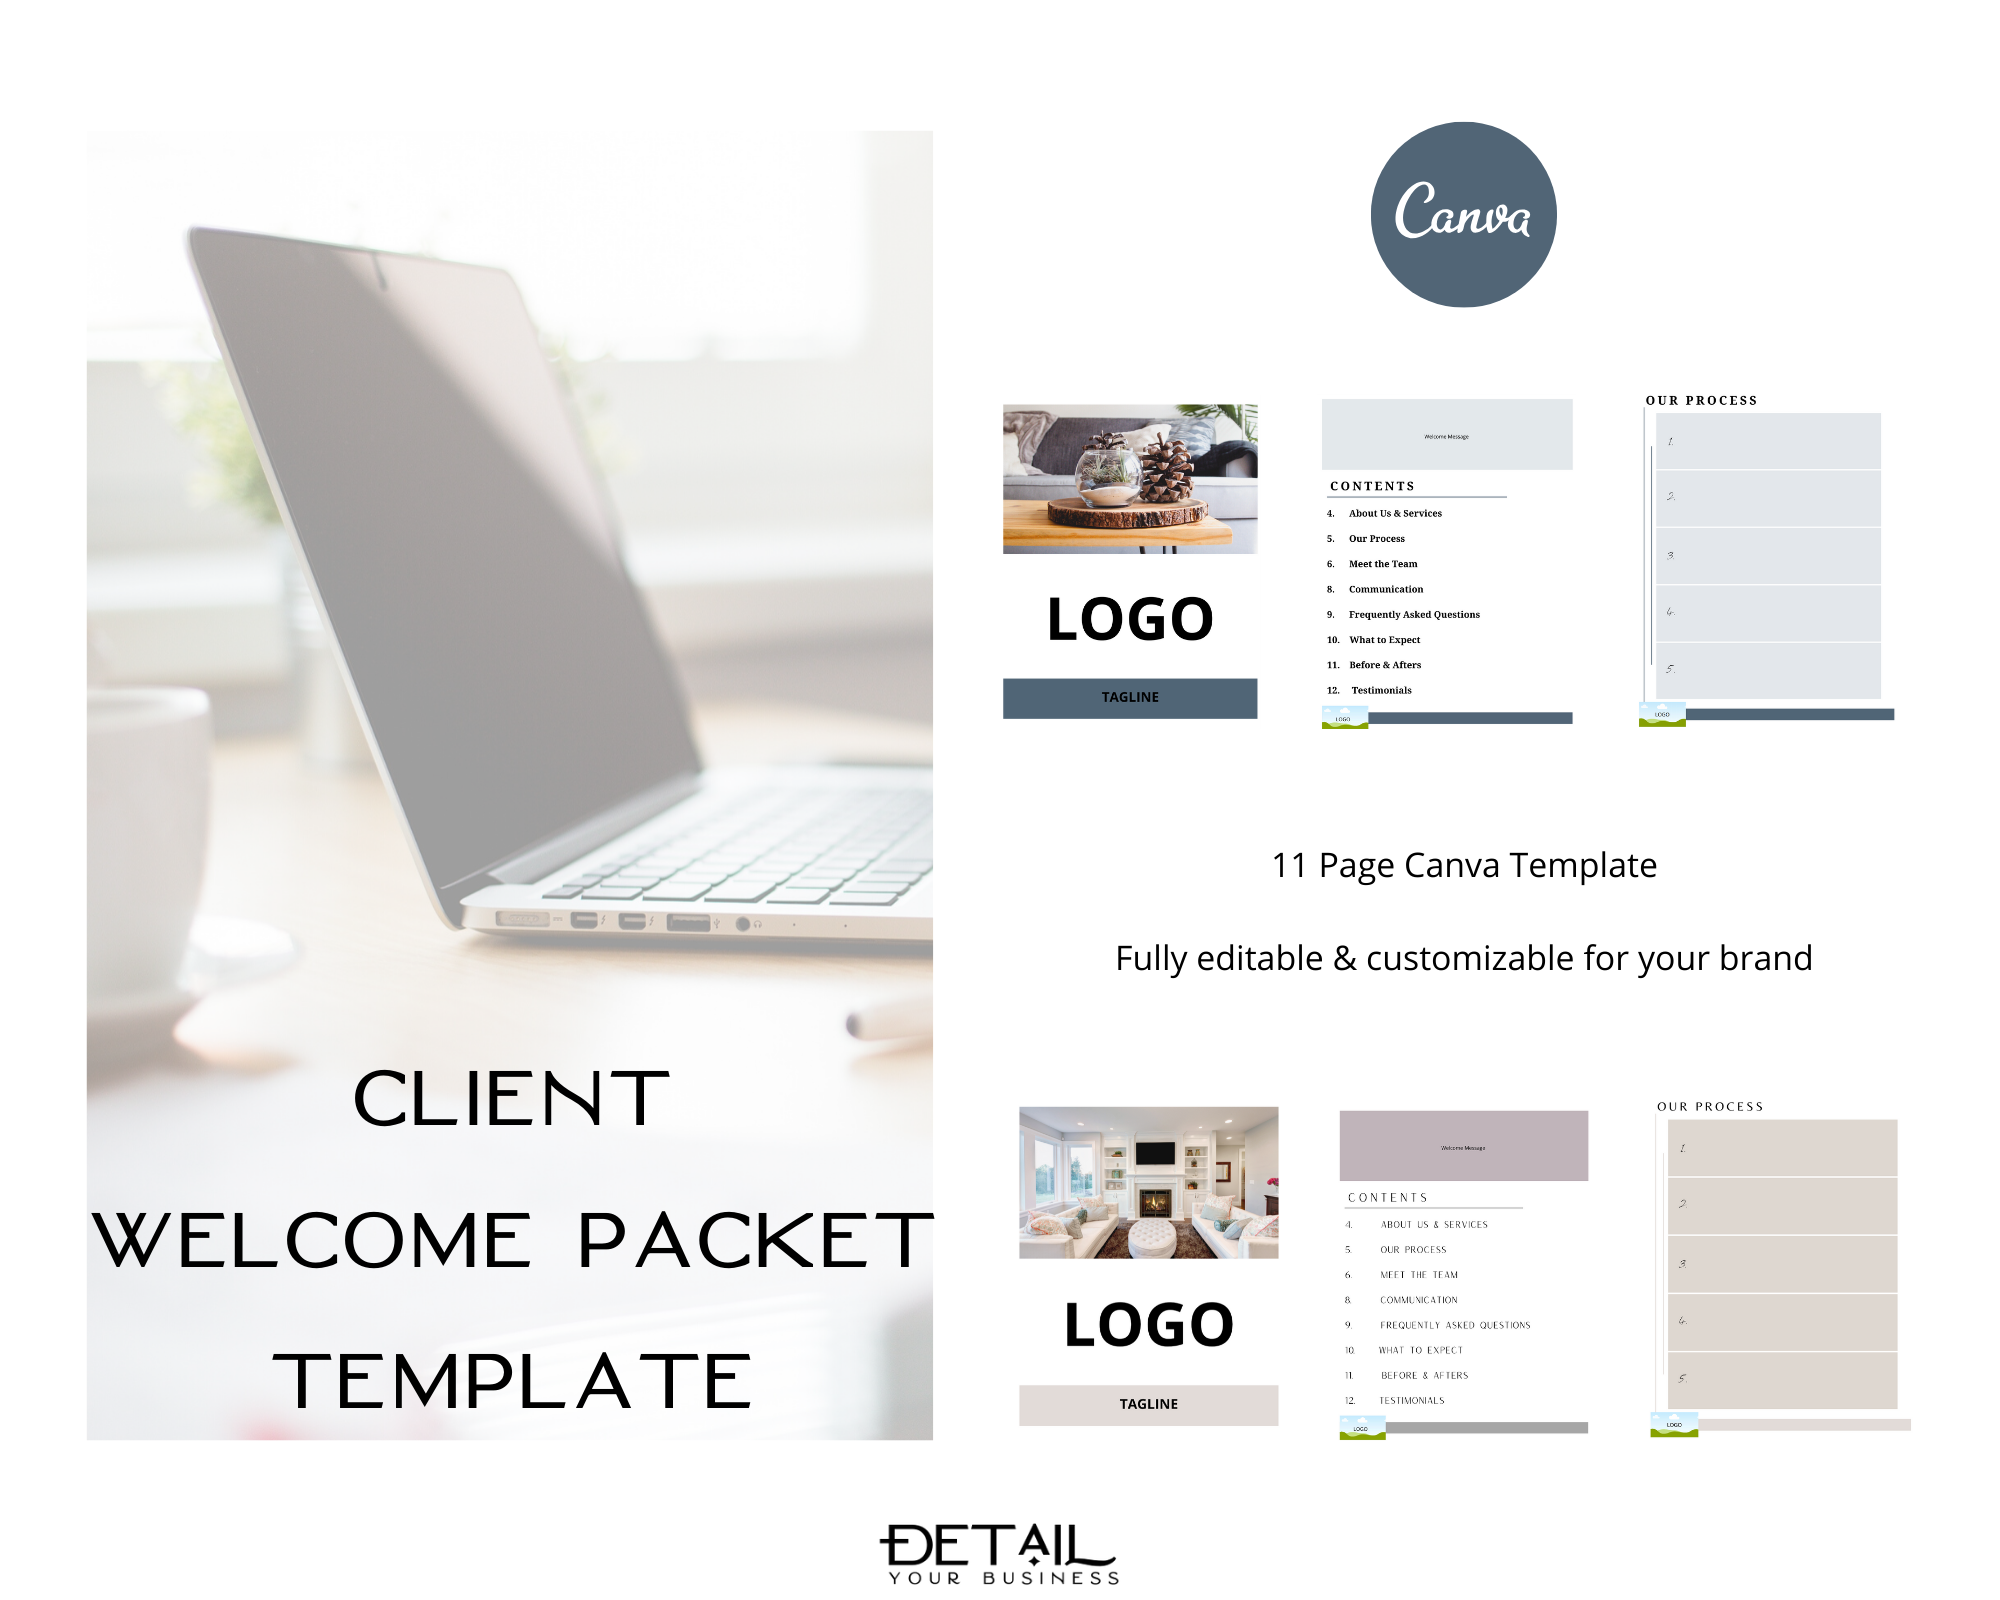 Client Welcome Packet Template.png